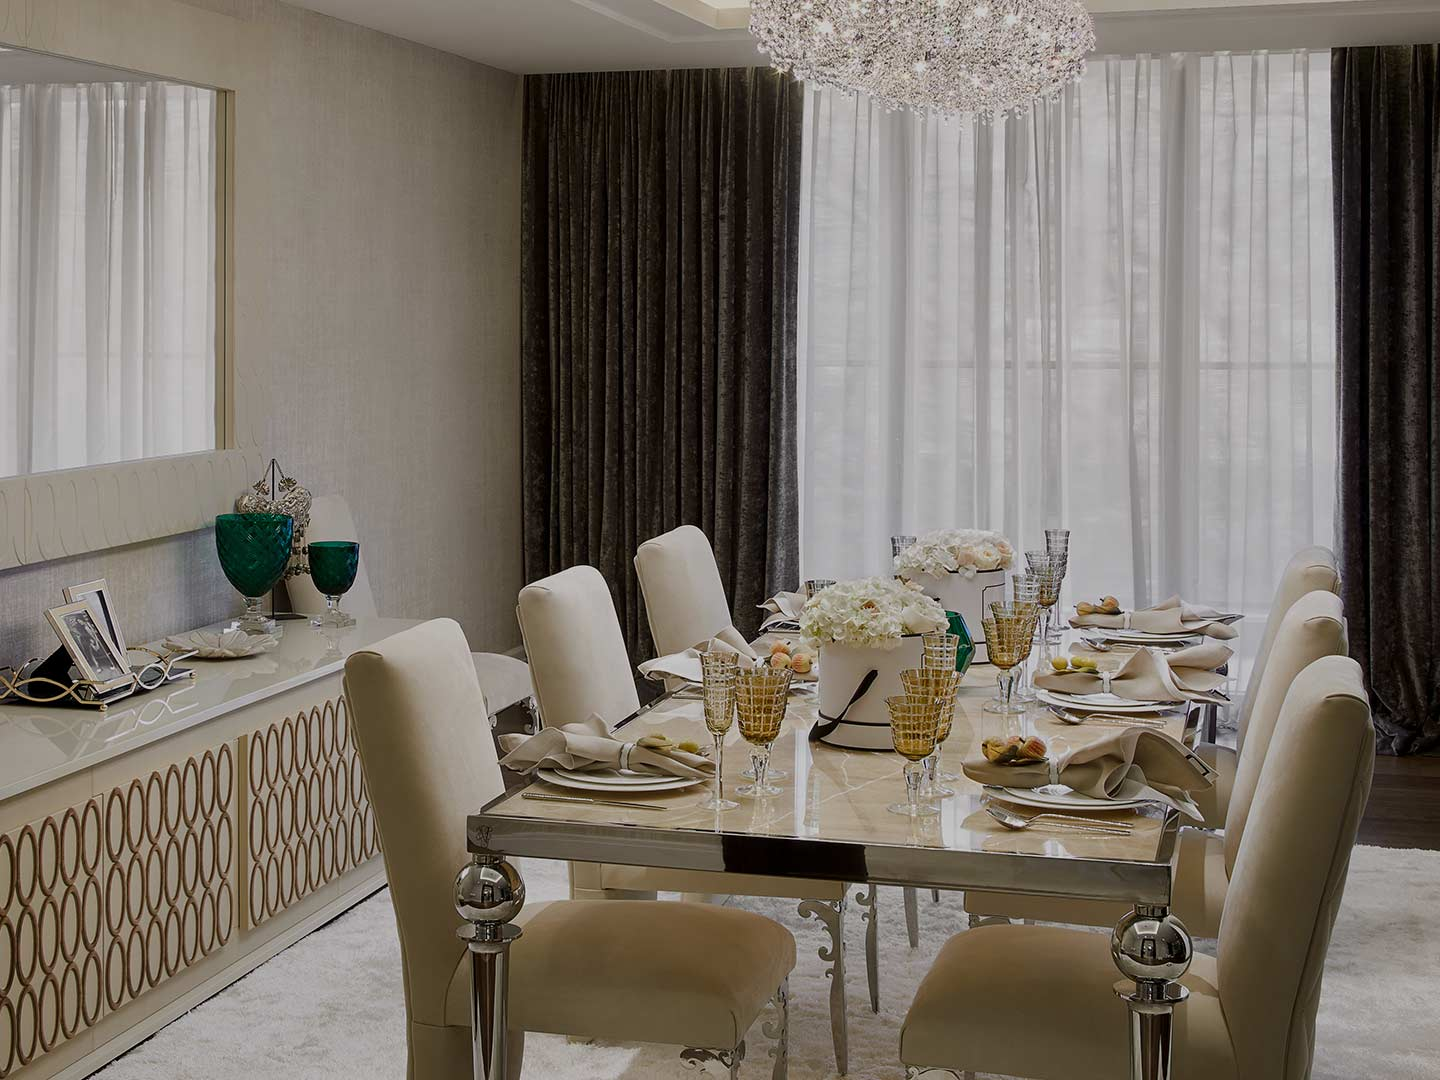 Anna Casa Luxury Interior Design Styling Chelsea London